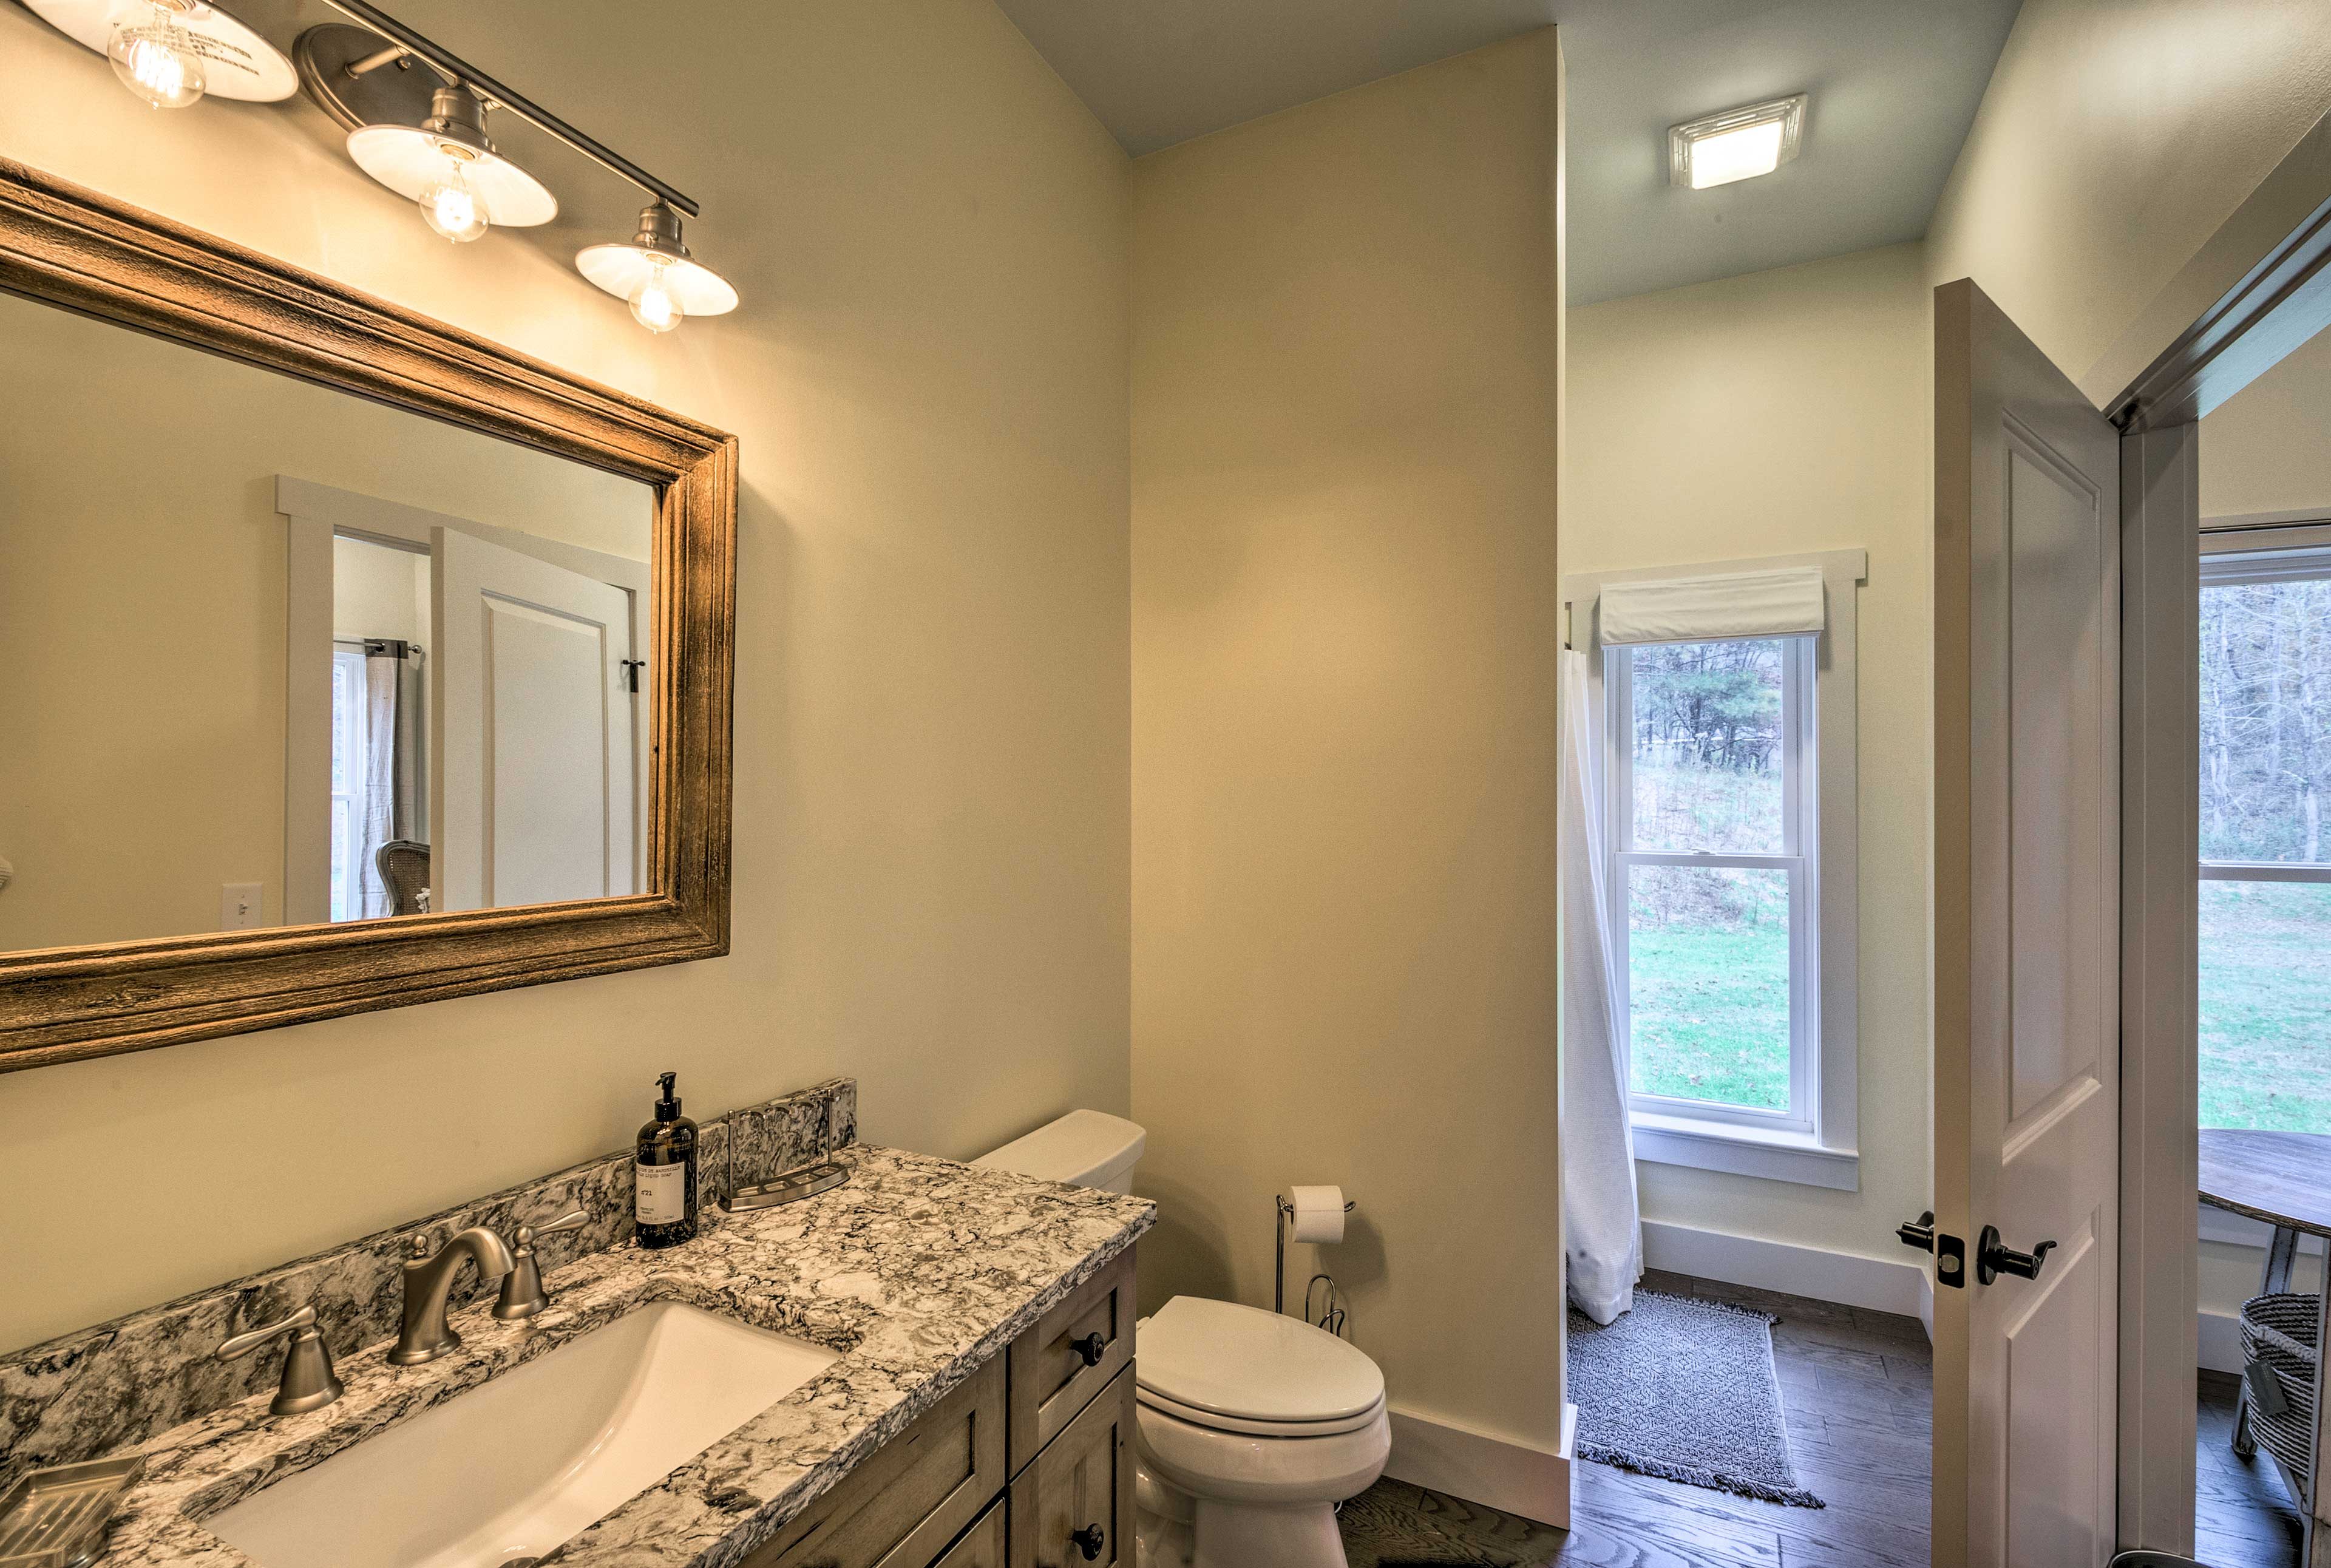 Freshen up in one of 2 bathrooms in the home.